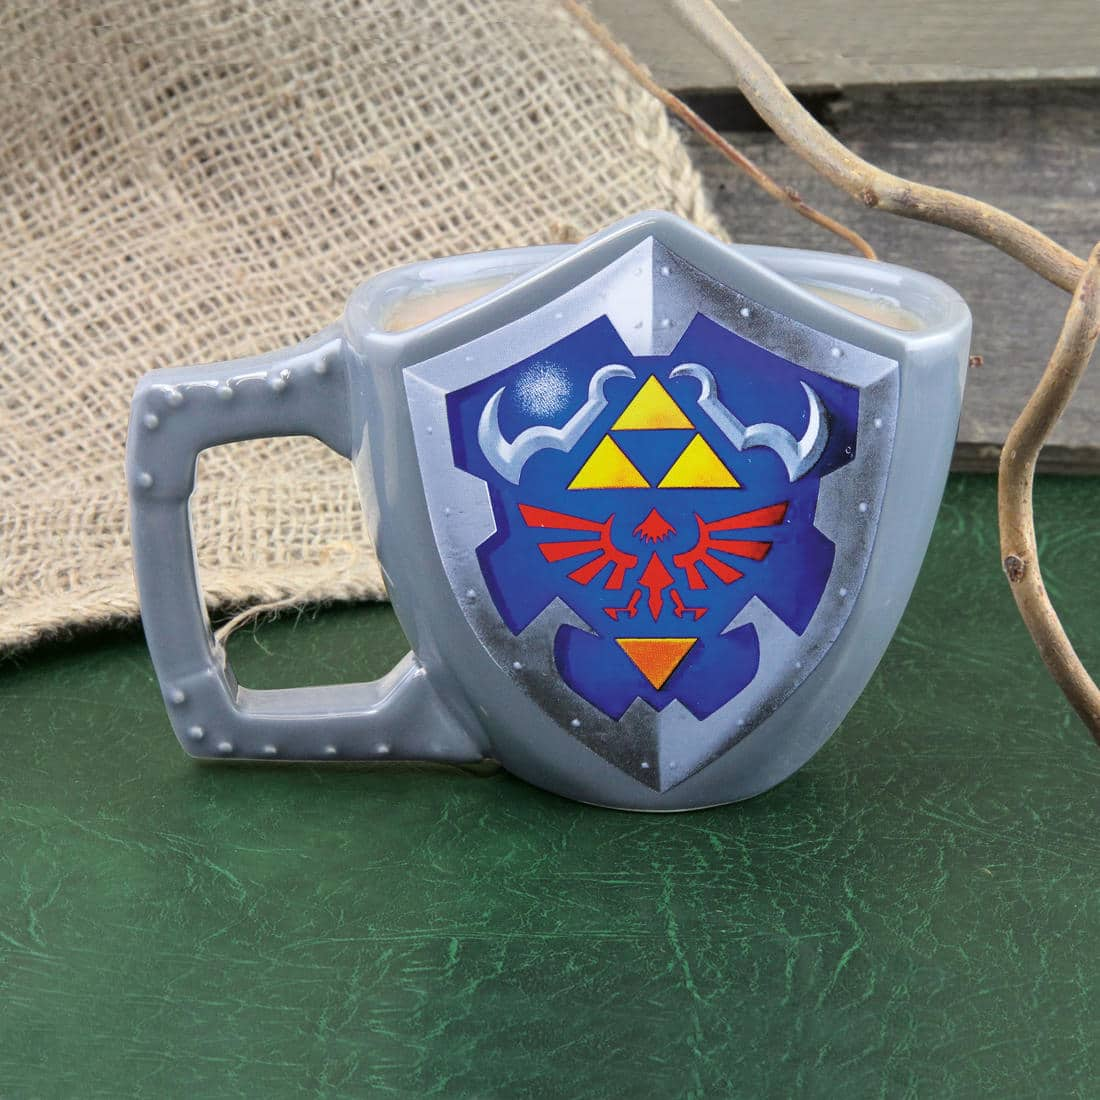 The Legend of Zelda: Links Schild als Kaffeetasse